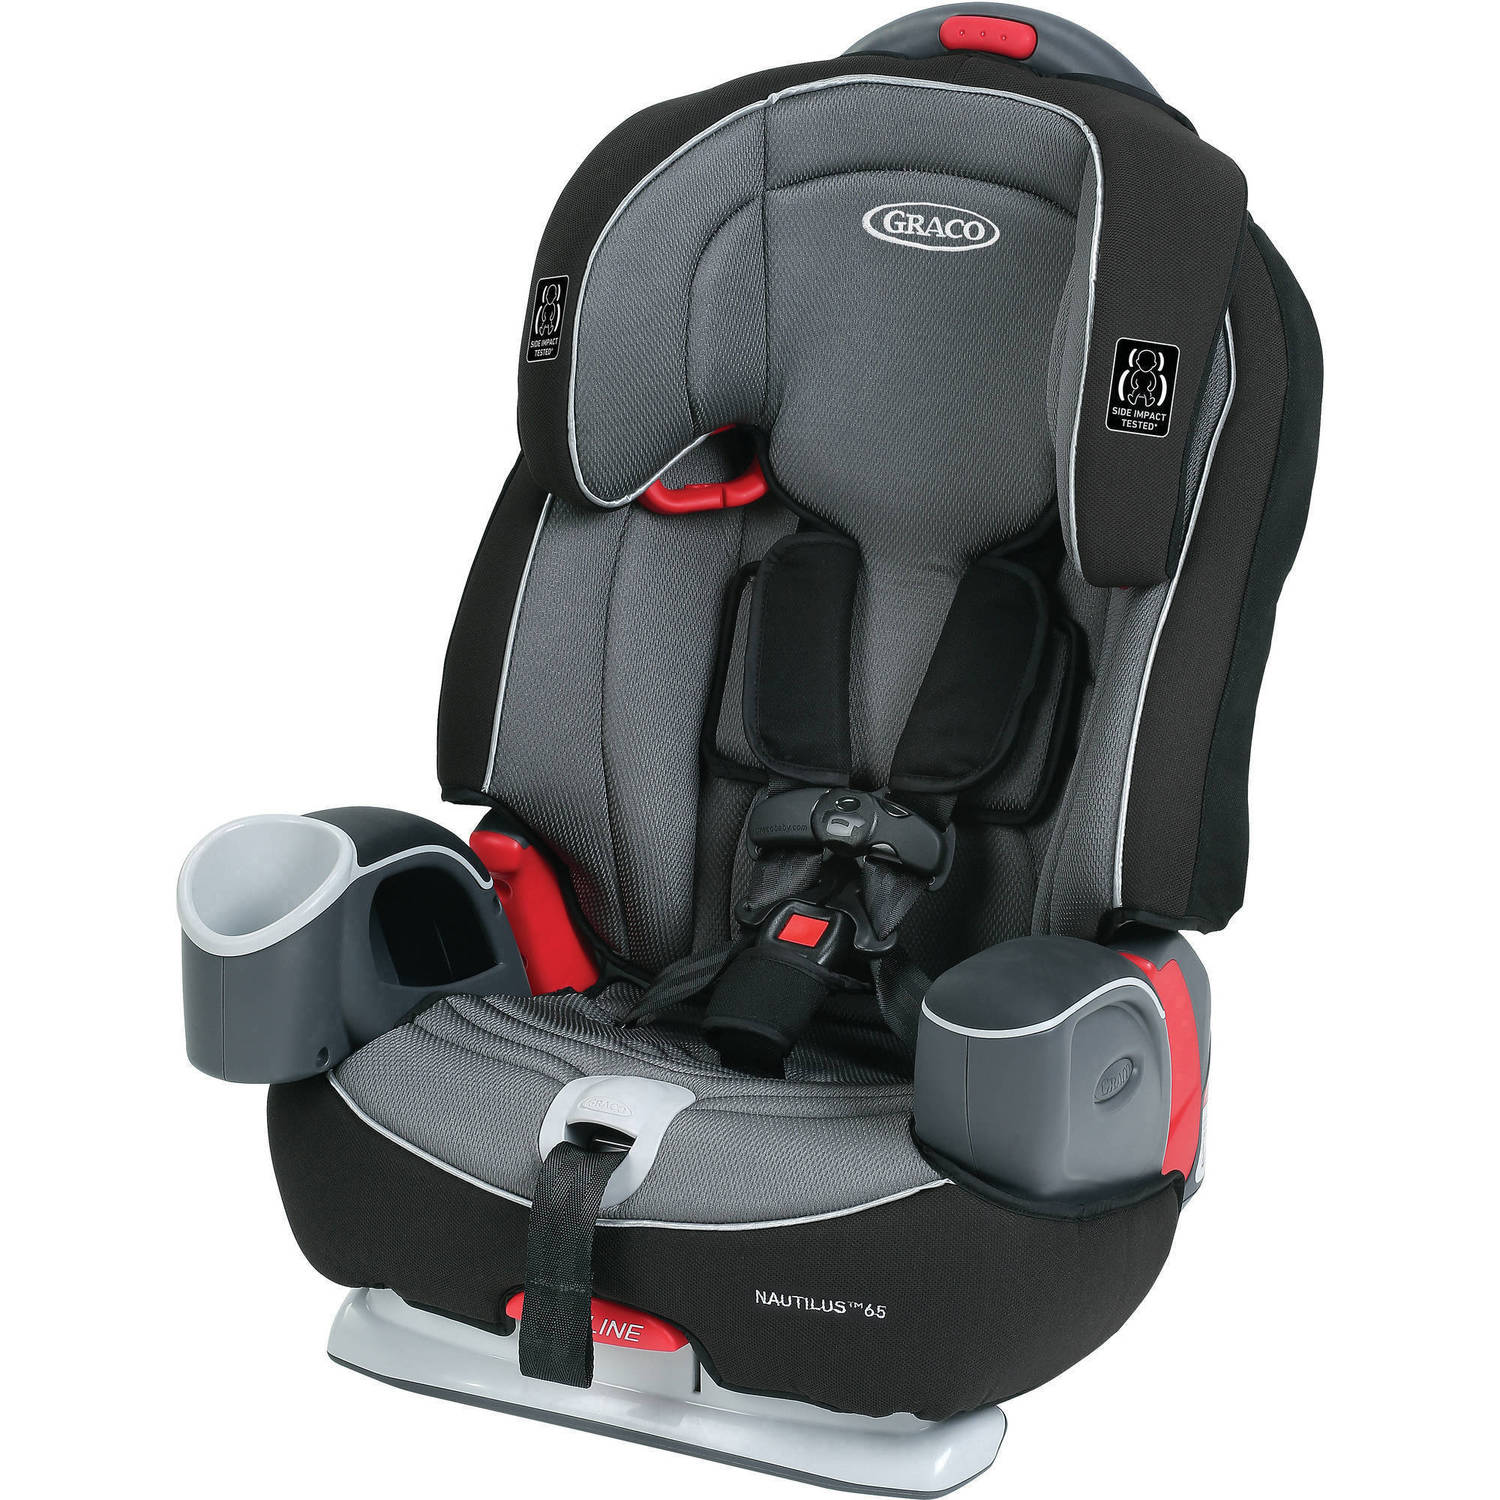 Graco Nautilus 65 3-in-1 Multi-Use Convertible Harness Booster Car Seat, Bravo